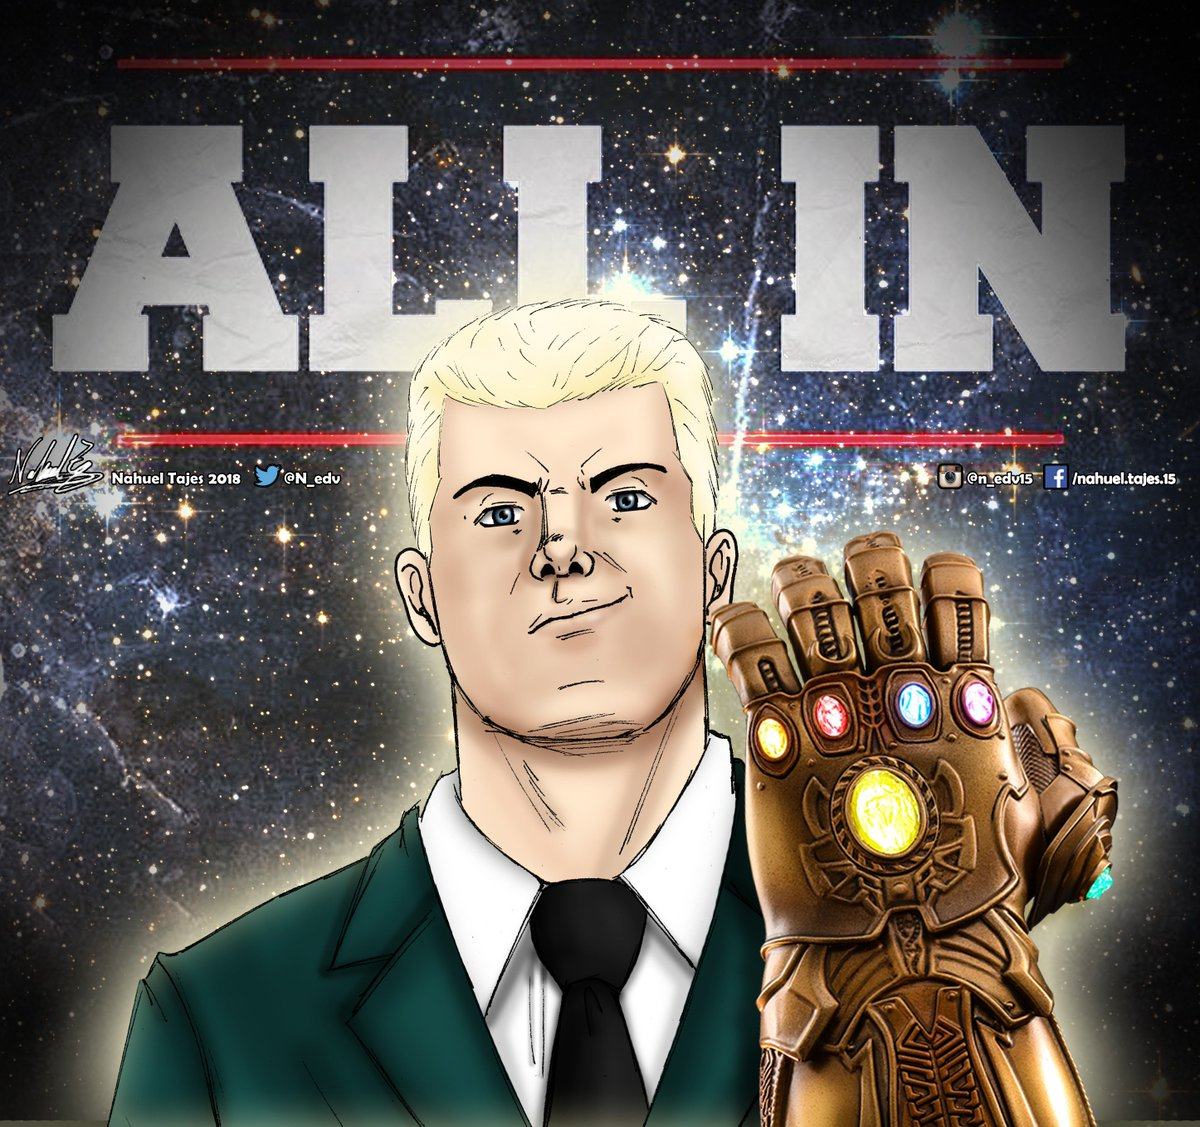 Infinity SOLD OUT  Congratulations to @CodyRhodes and all the @ALL_IN_2018 staff  #Cody #CodyRhodes #ALLIN #InfinityWar  #Wrestling #NJPW #ROH #allin2018 #fanart #dibujo #drawing @voiceswrestling @OneHourTees<br>http://pic.twitter.com/4dAlDrQ9dh